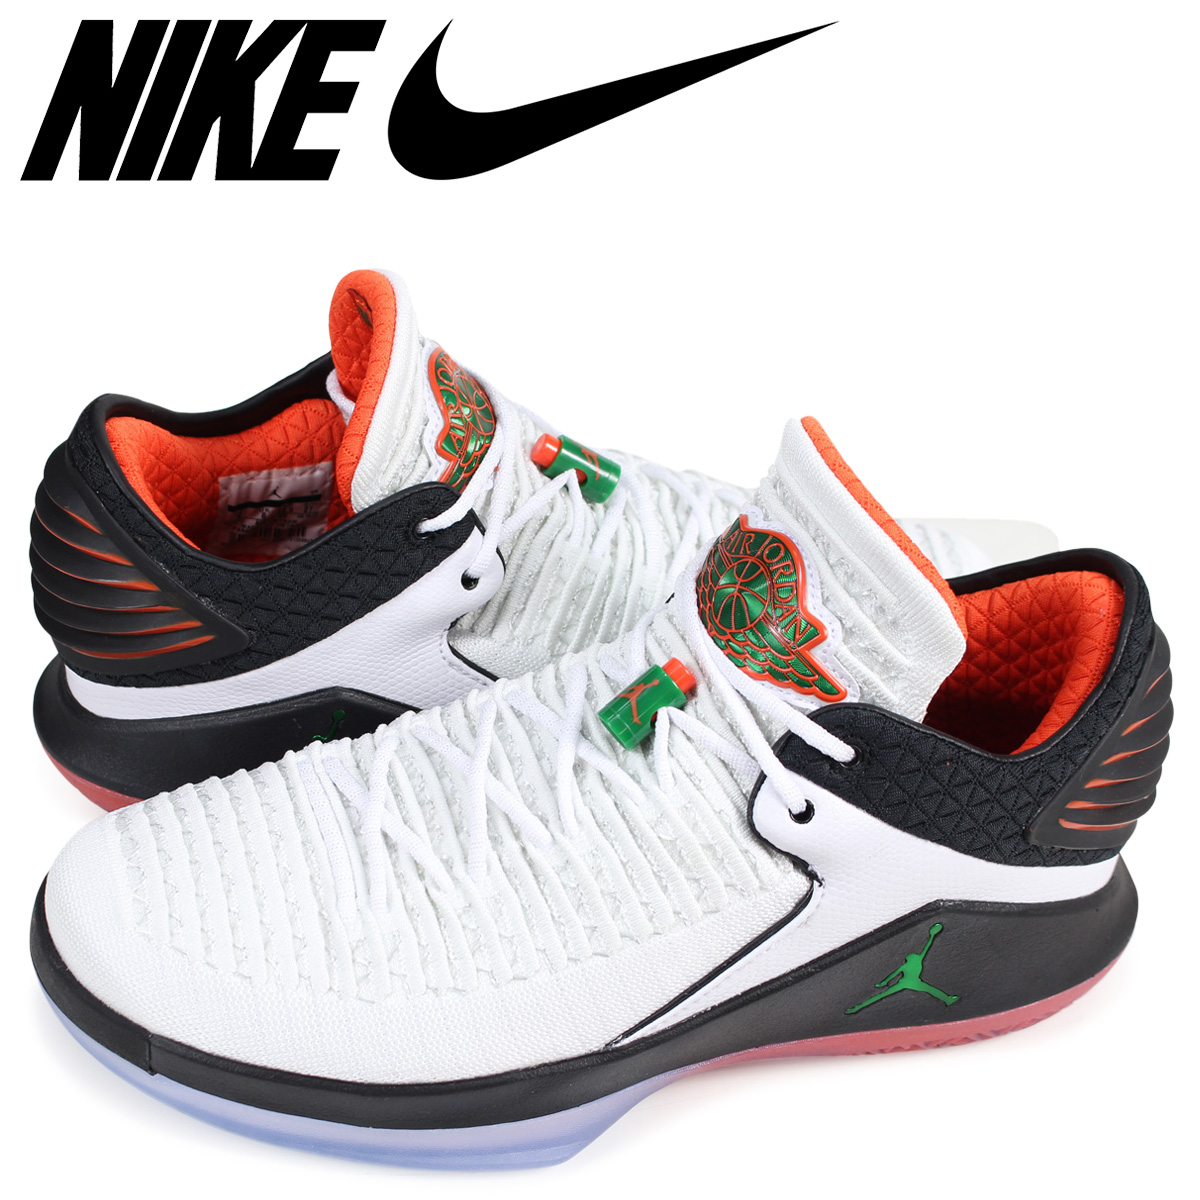 37838a55c87 NIKE AIR JORDAN 32 LOW PF GATORADE Nike Air Jordan 32 sneakers AH3347-100  men ...